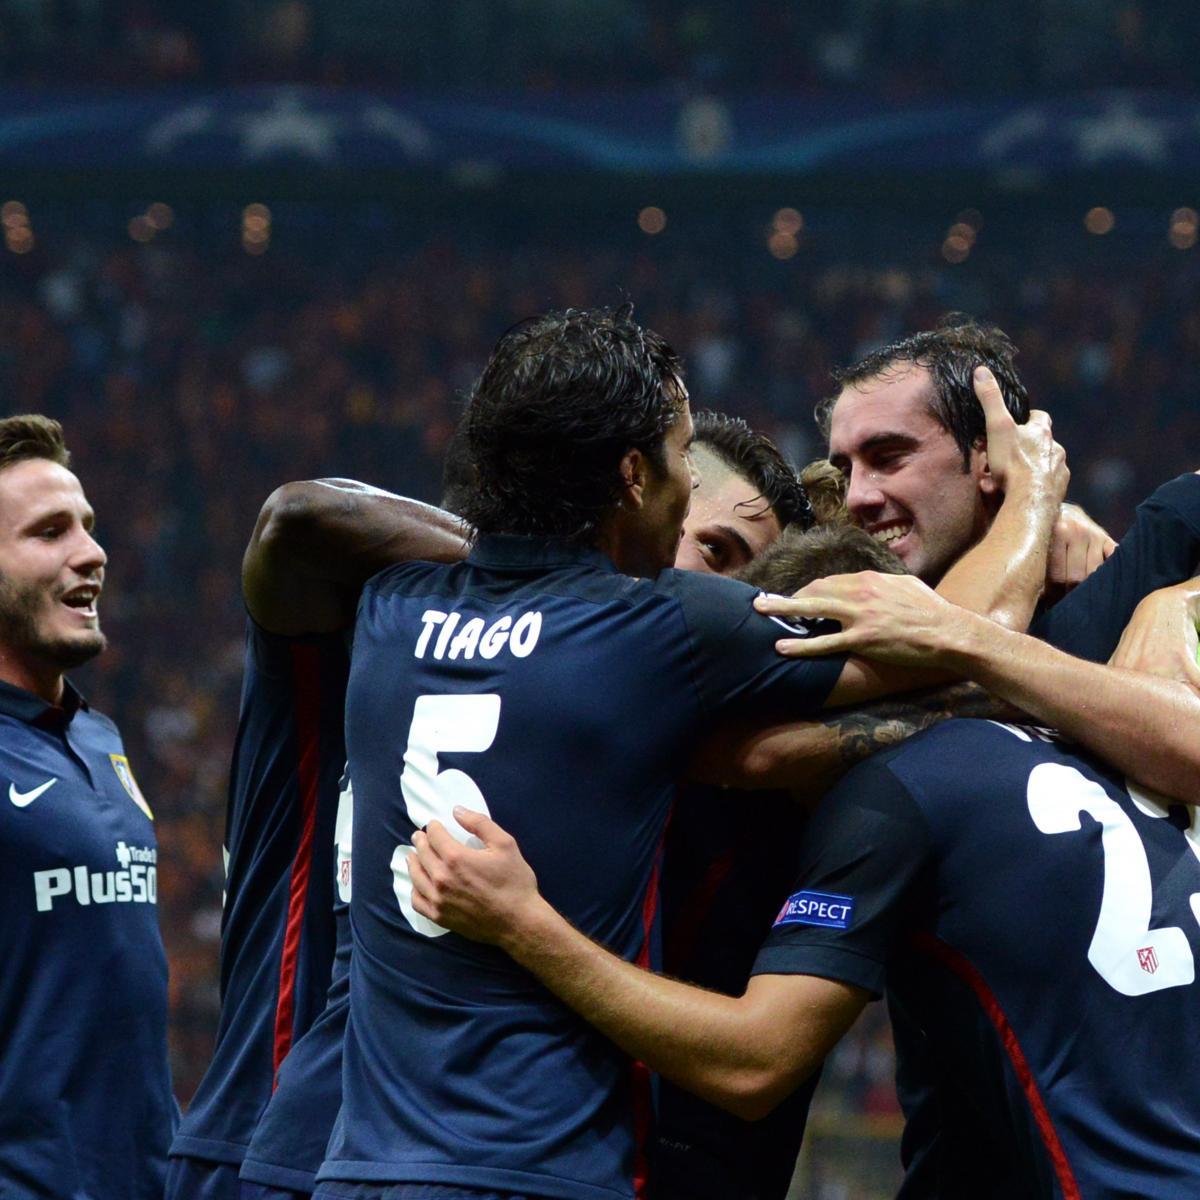 Champions League 2019 Live Stream Odds For Tuesday S: Champions League 2016: Wednesday Odds, Live Stream For